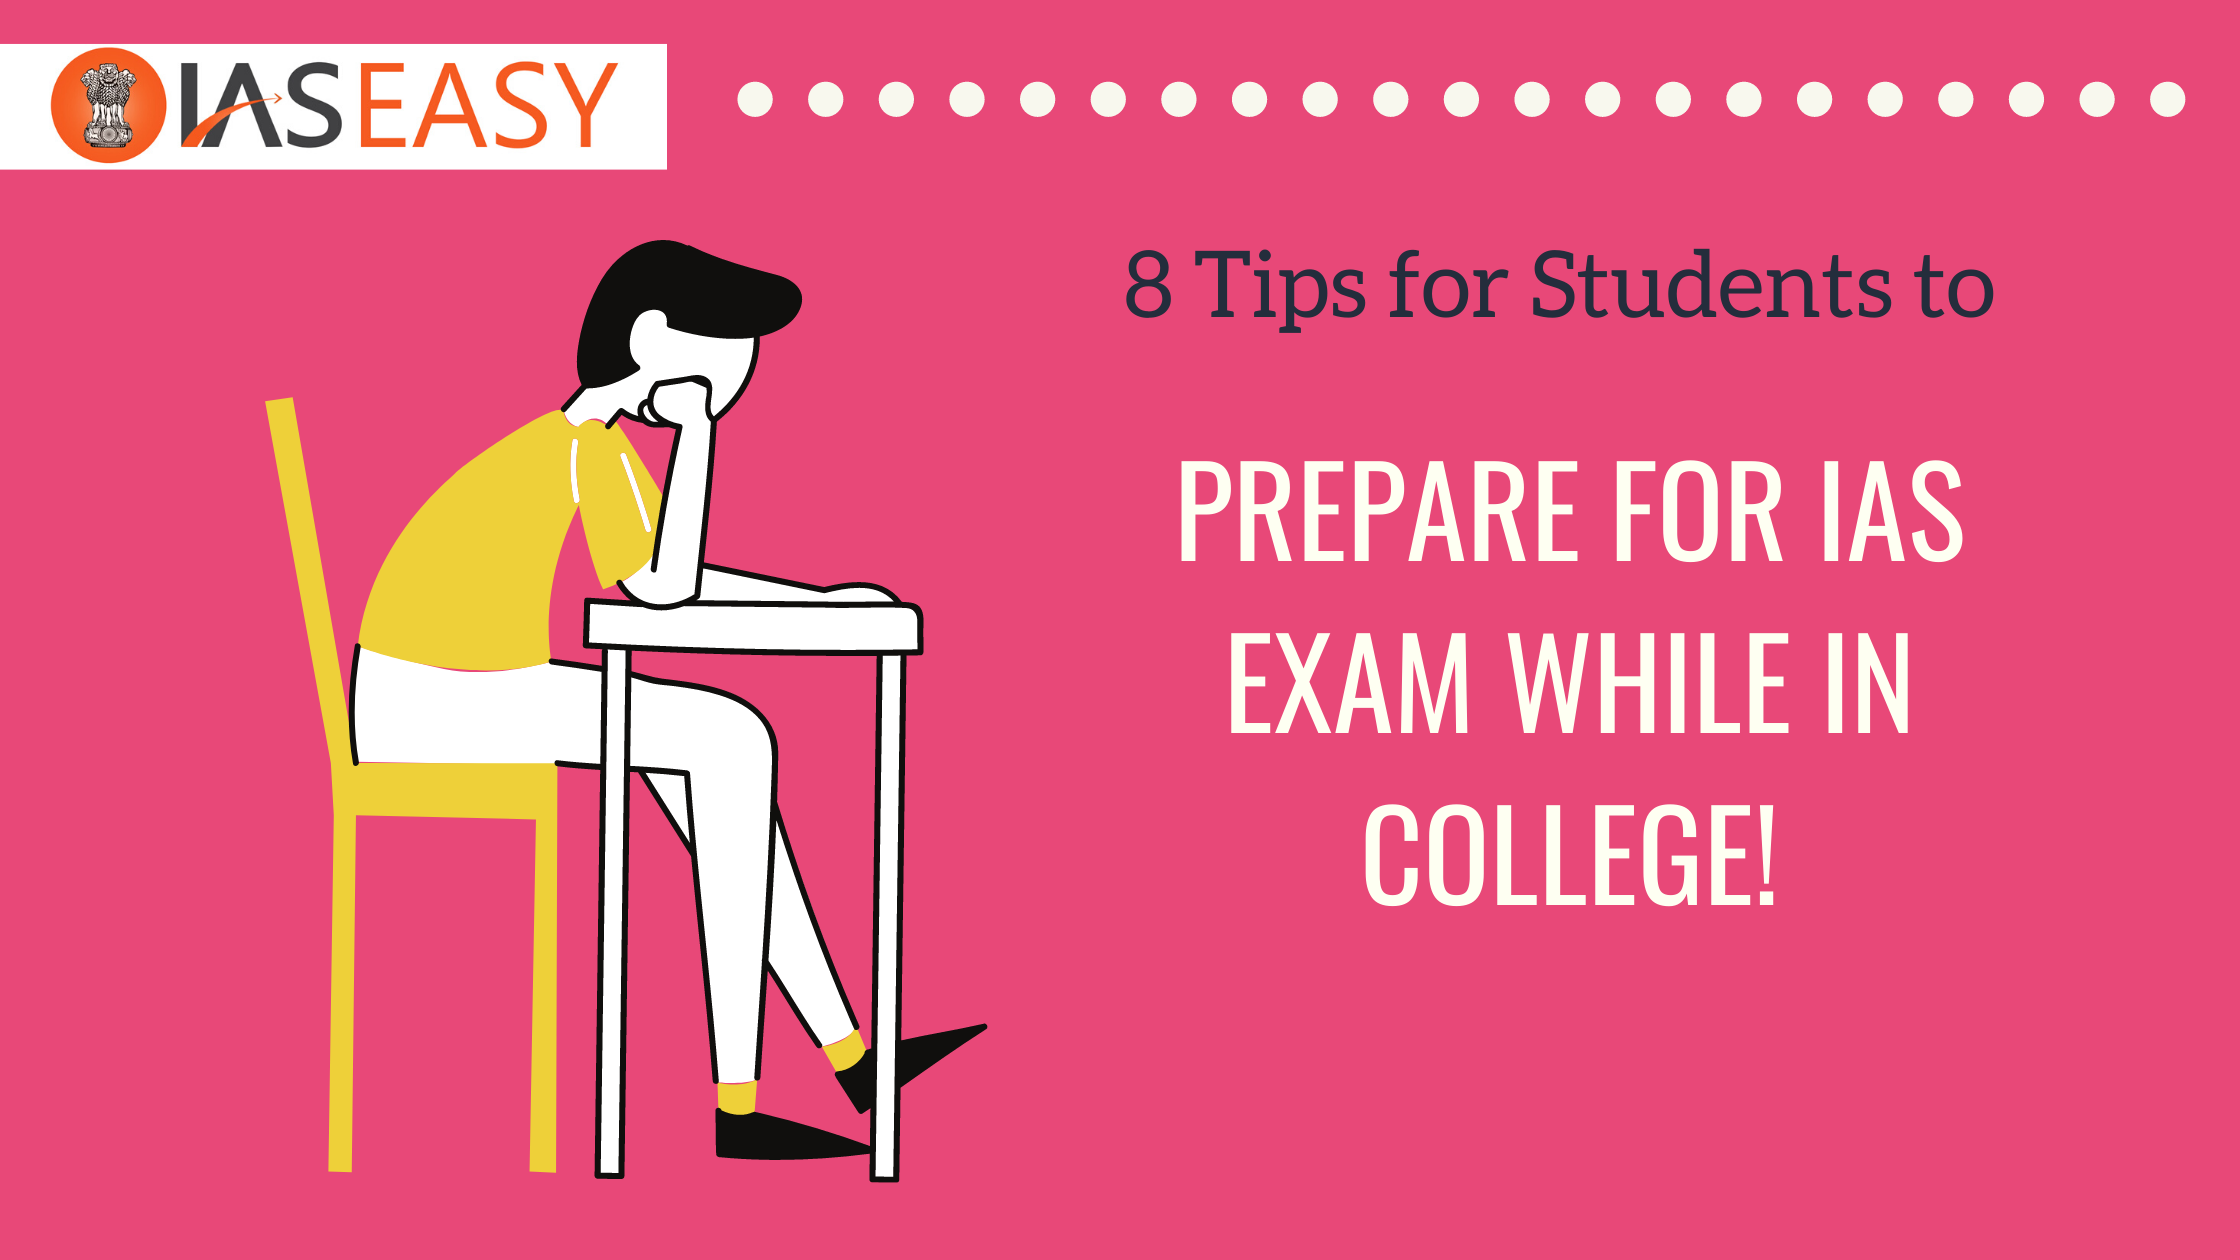 8 Tips for Students to Prepare for IAS Exam while in College!